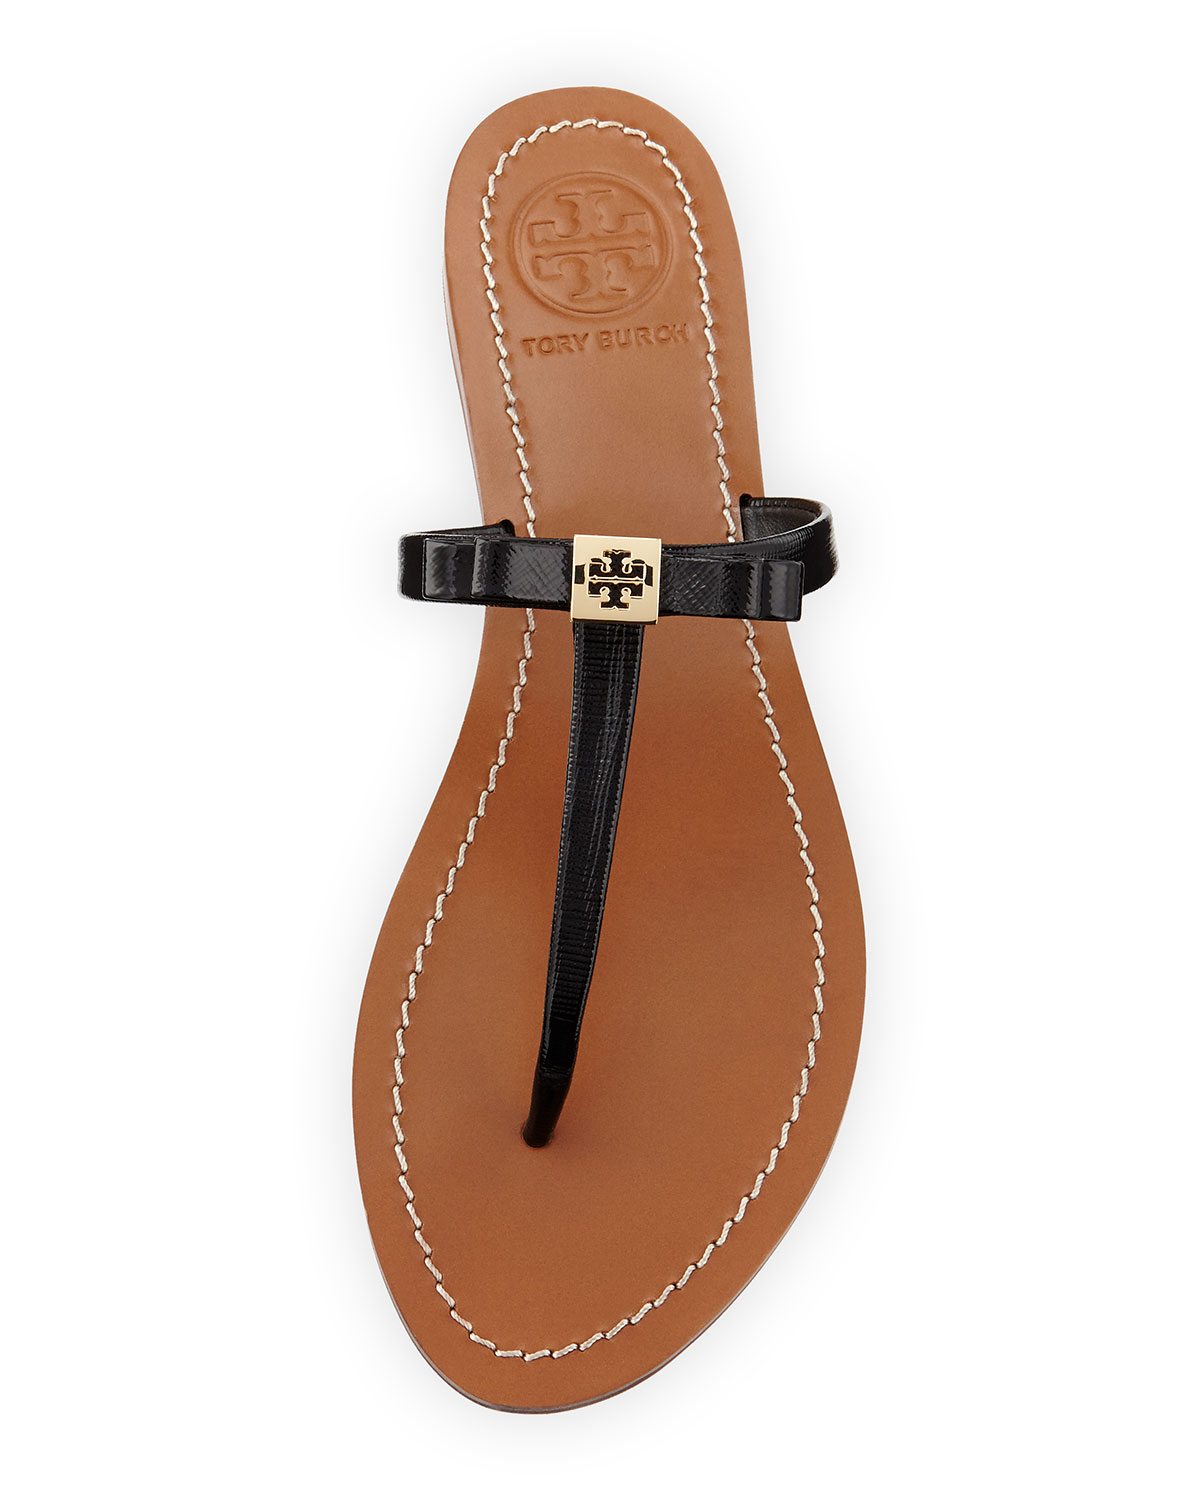 b6e227afcd3 Lyst - Tory Burch Leighanne Bow Thong Sandal in Black